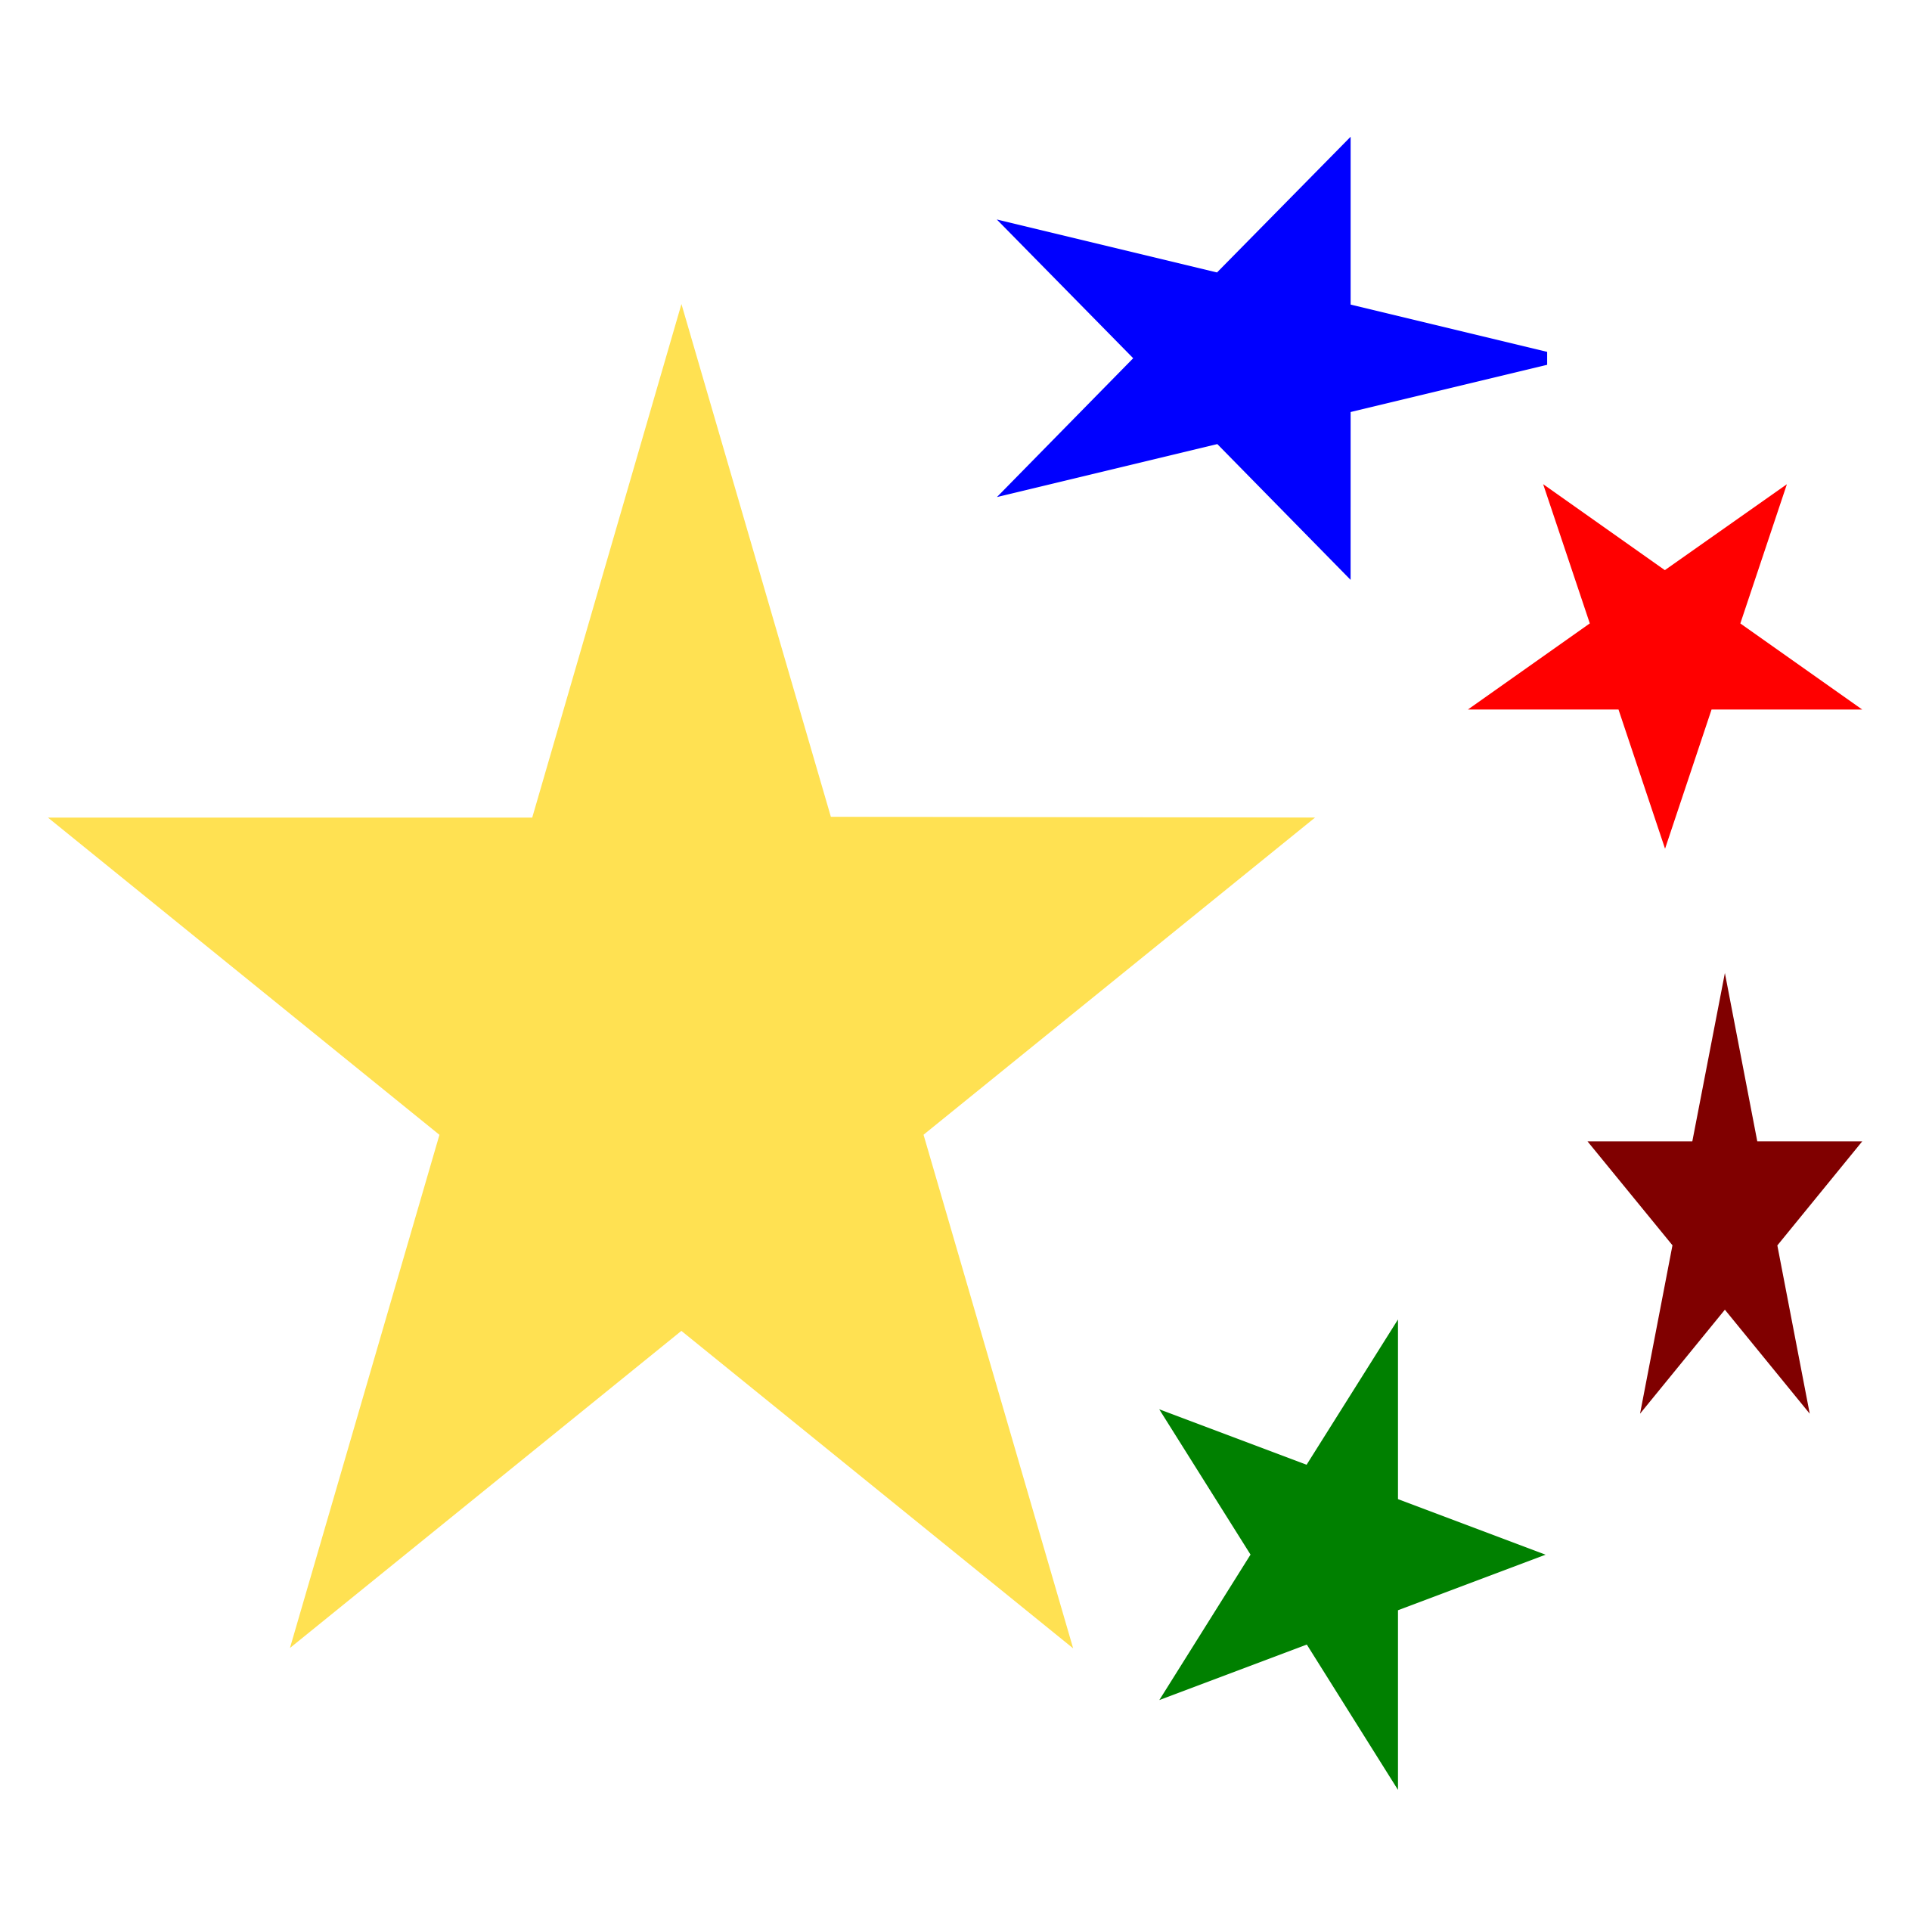 Shining Star Clipart Cliparts Co-Shining Star Clipart Cliparts Co-12